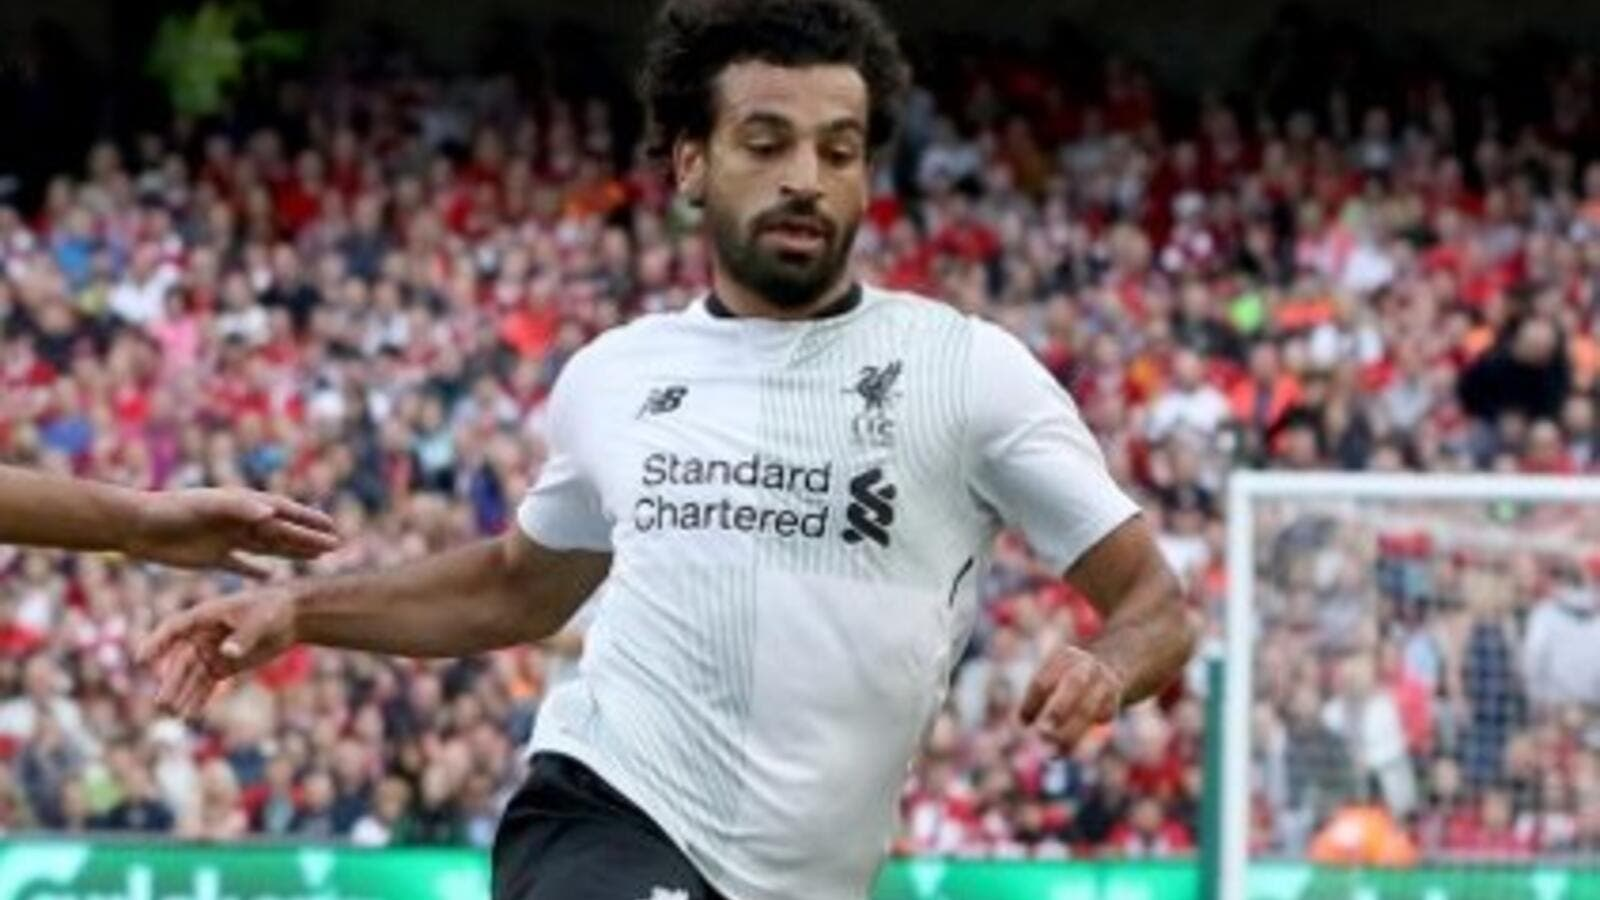 The Opta Sports network revealed on Saturday its list of the top 20 players in the English Premier League this season, which included the Egyptian football wonder and Liverpool star Mohamed Salah.